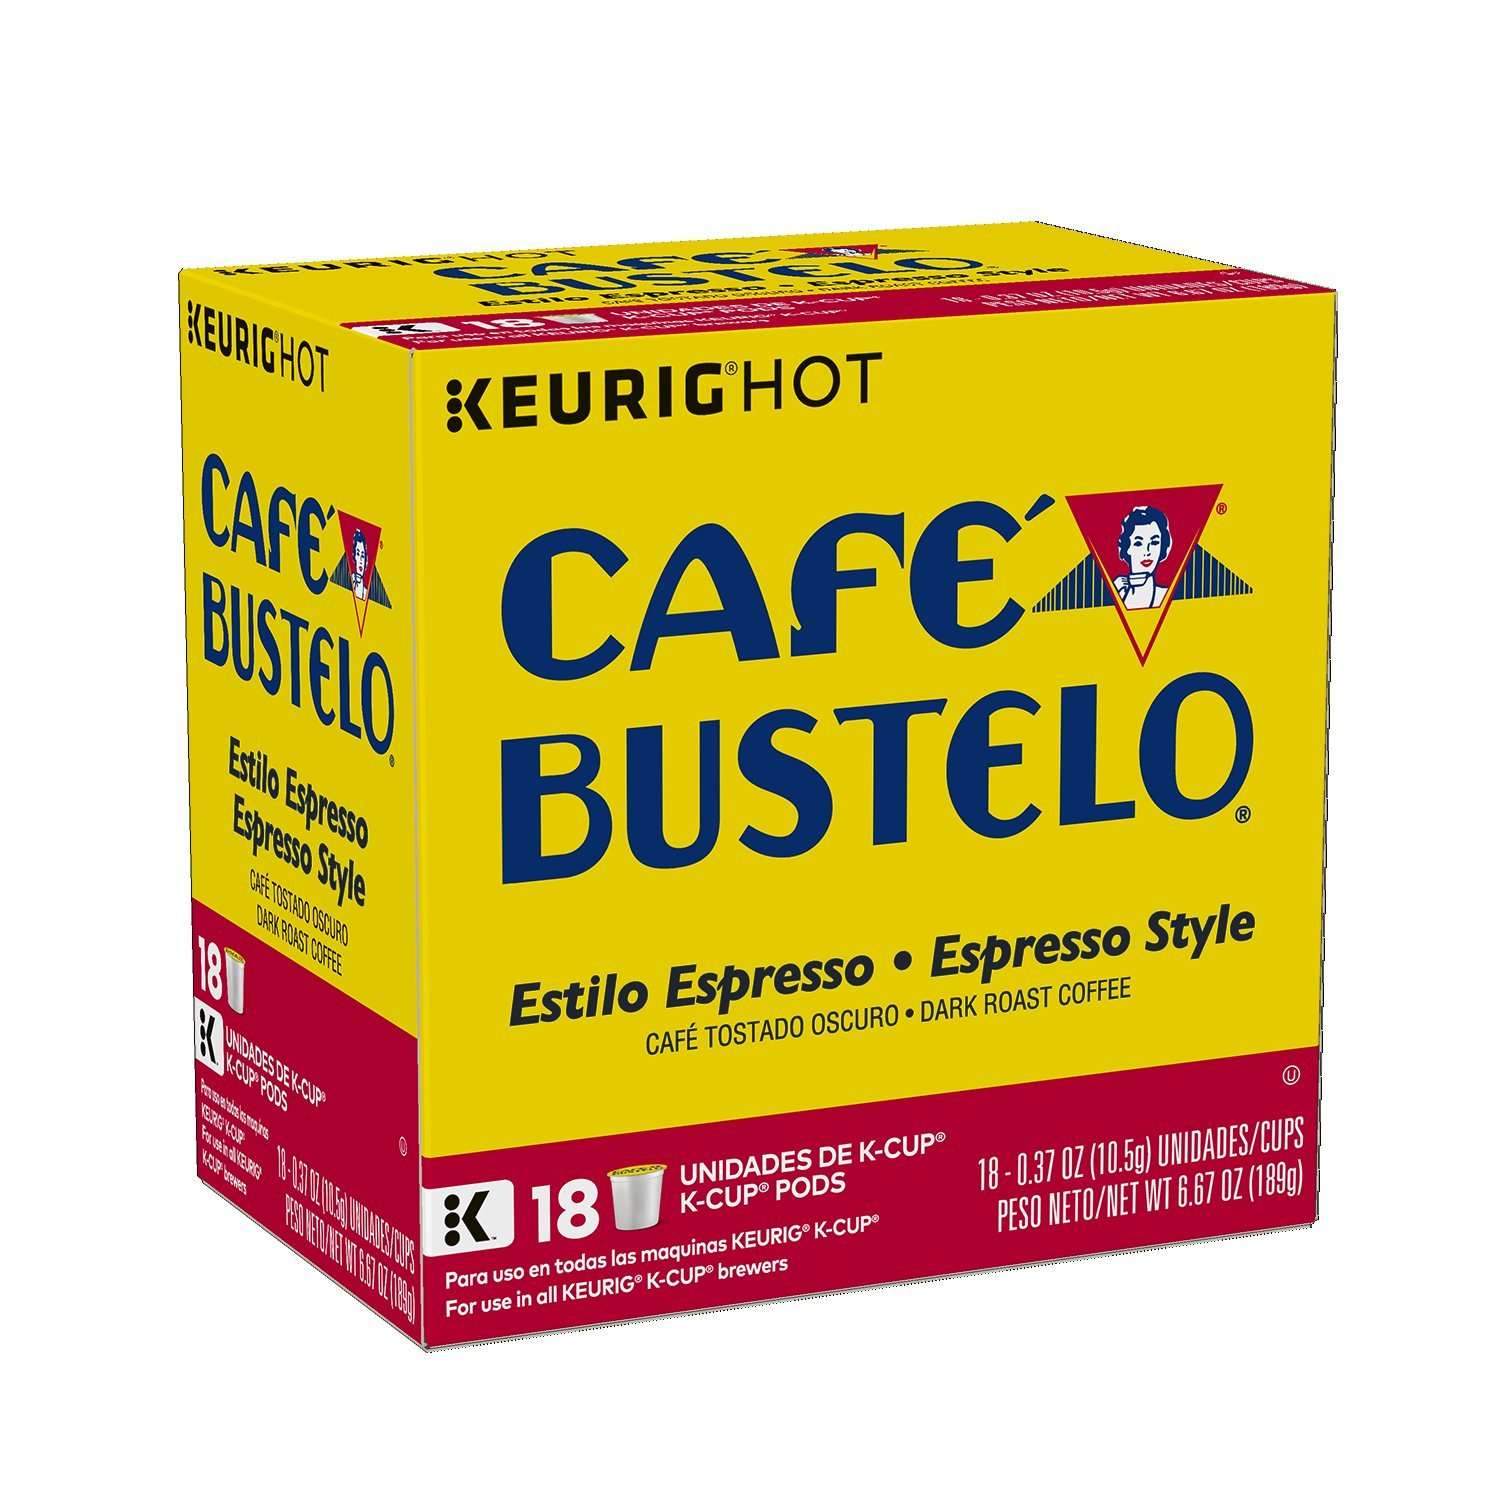 Café Bustelo Espresso Style K-Cup Pods for Keurig K-Cup Brewers, Dark Roast Coffee, 18 Count (Pack of 4)